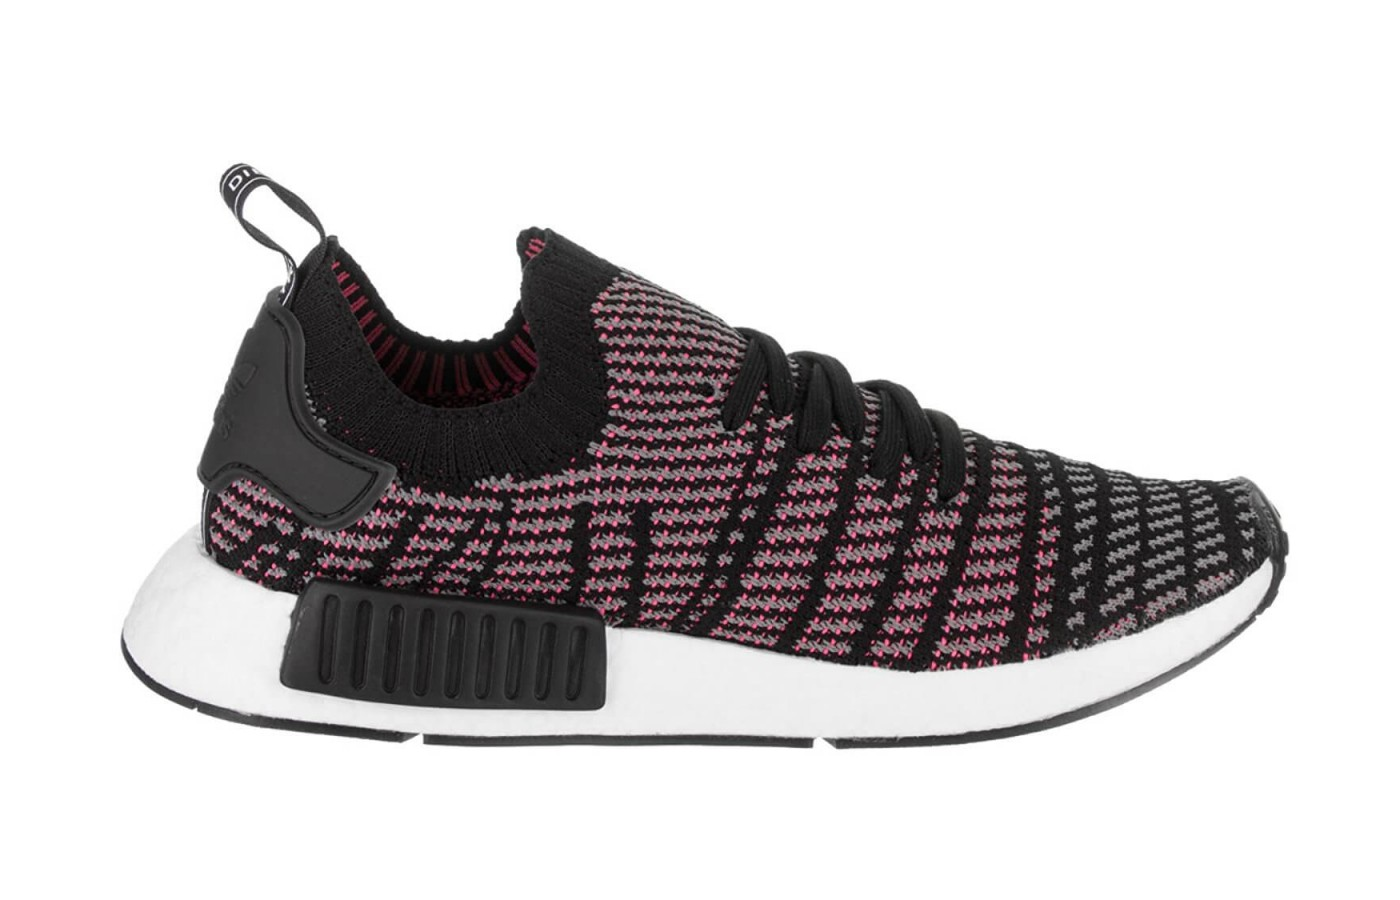 super cheap factory outlet new design Adidas NMD R1 Fully Reviewed and Compared